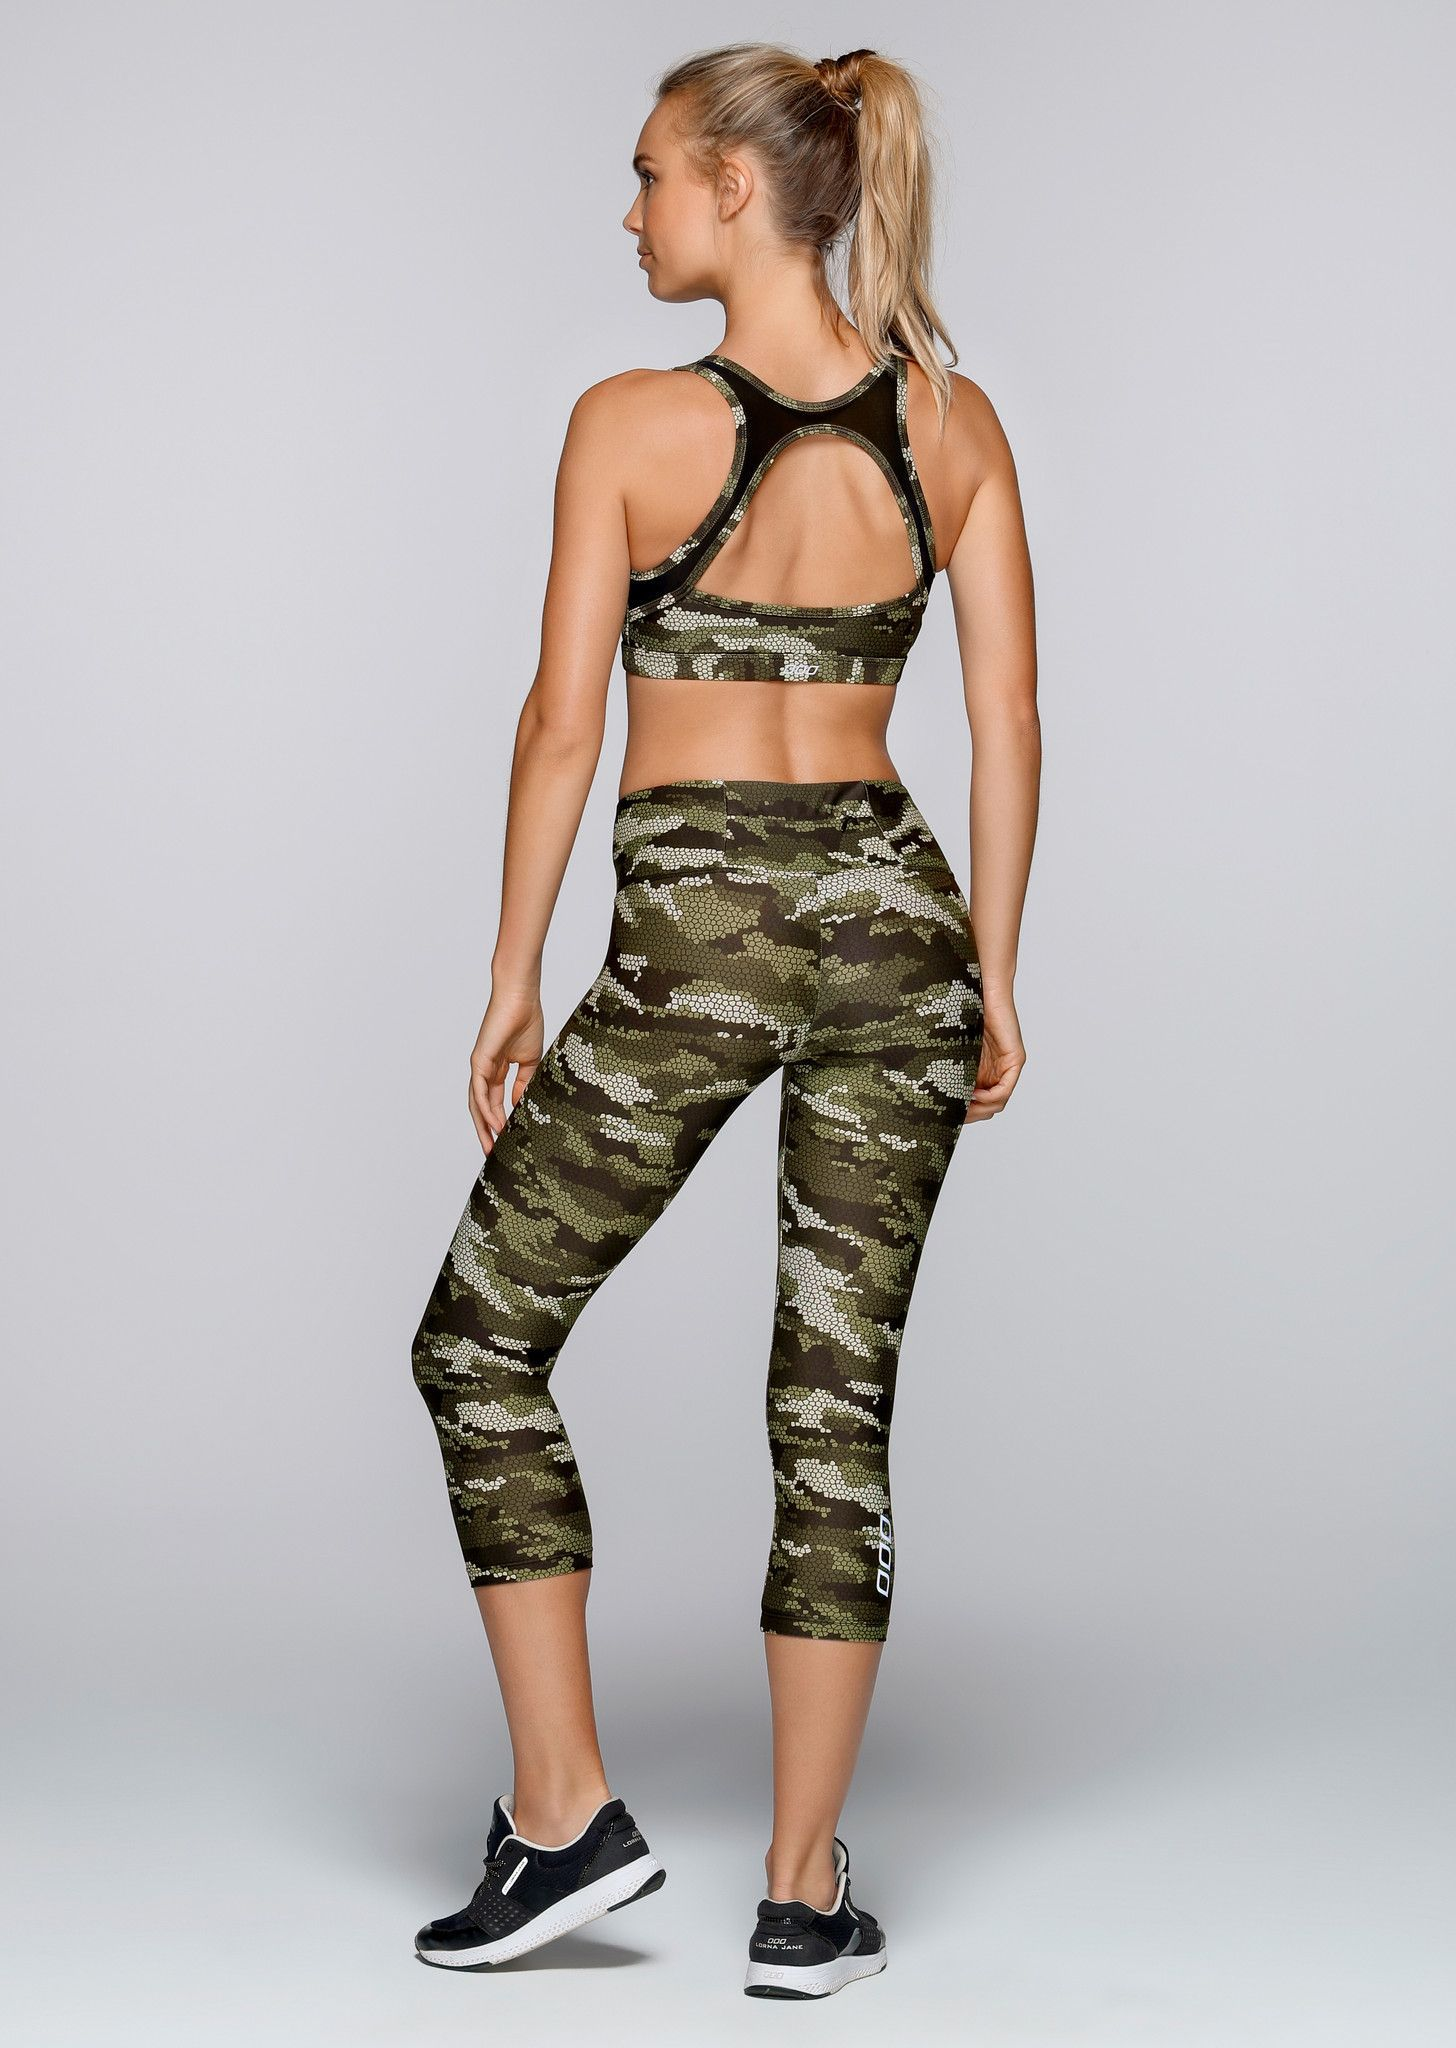 d9ed30552c Make a statement in this camo printed sports bra. The open back mesh panel  provides